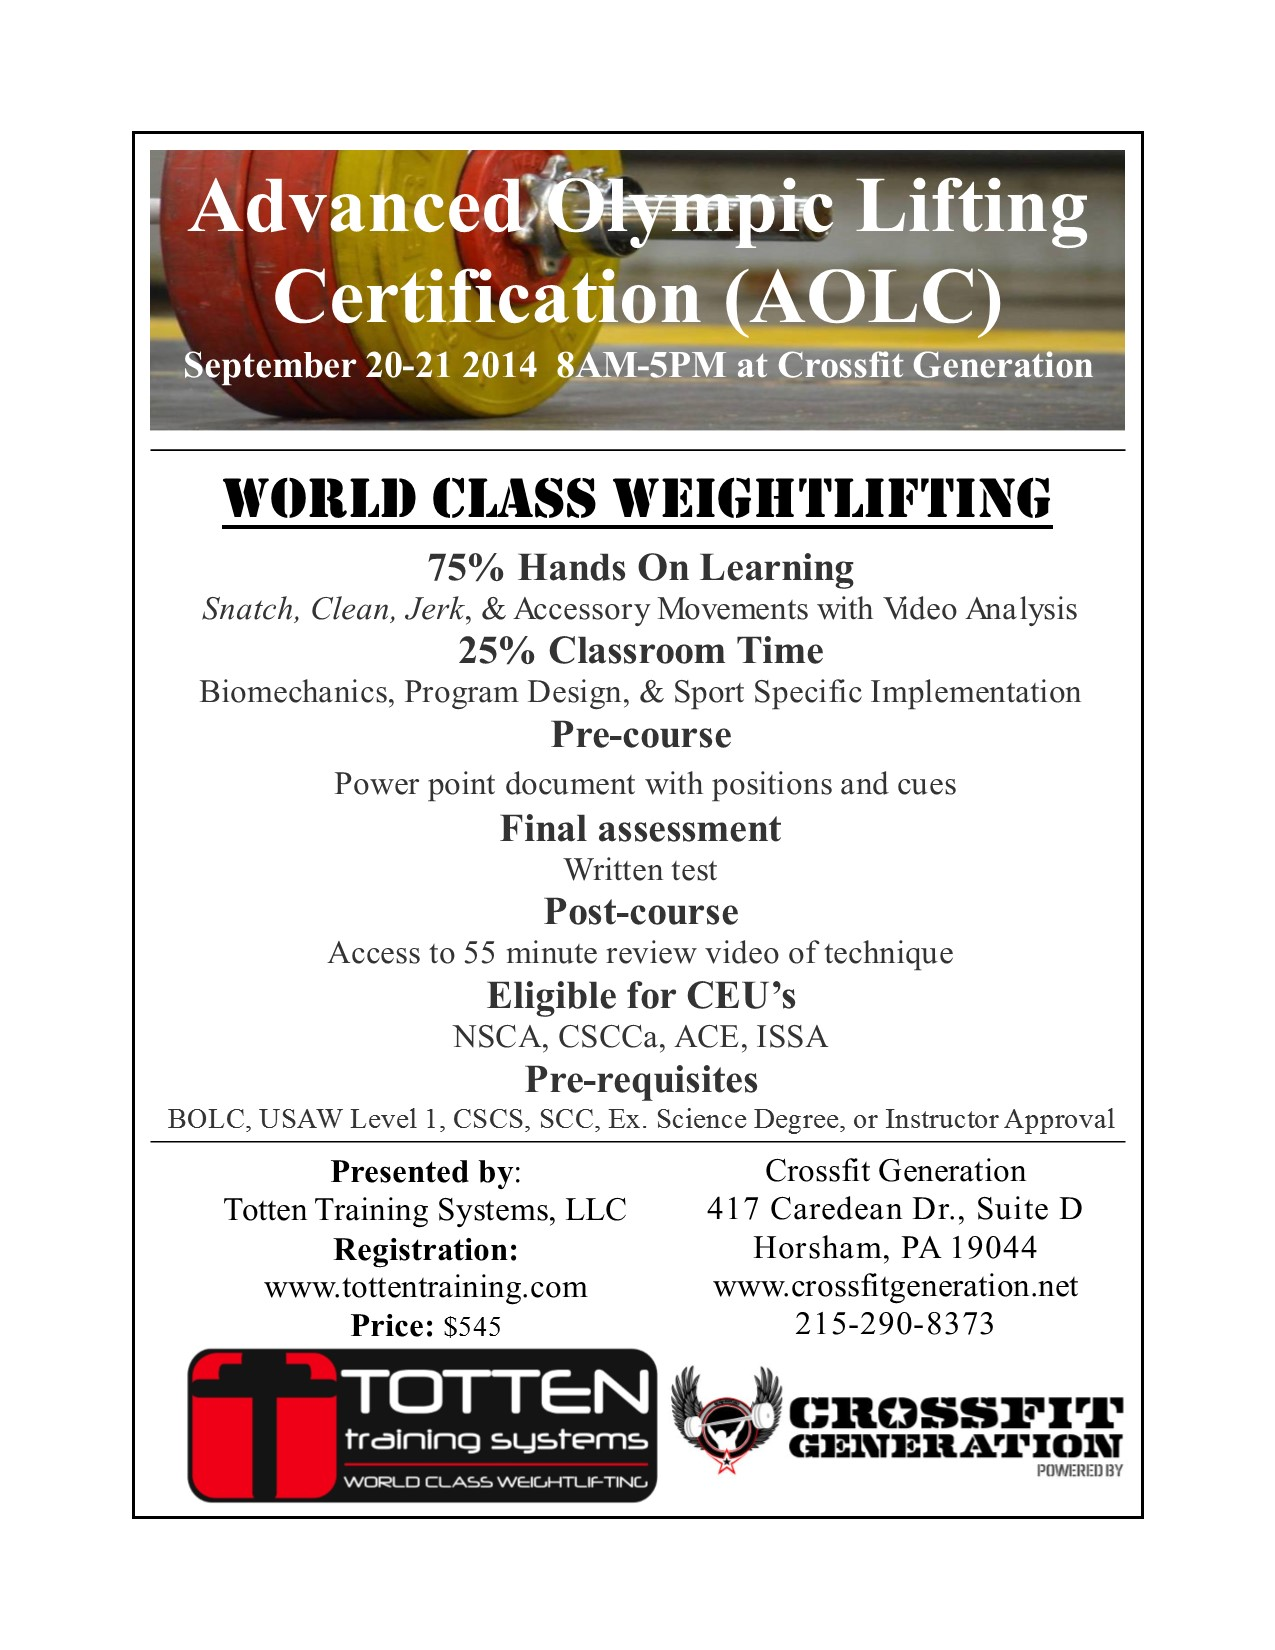 advanced olympic lifting certification crossfitgeneration